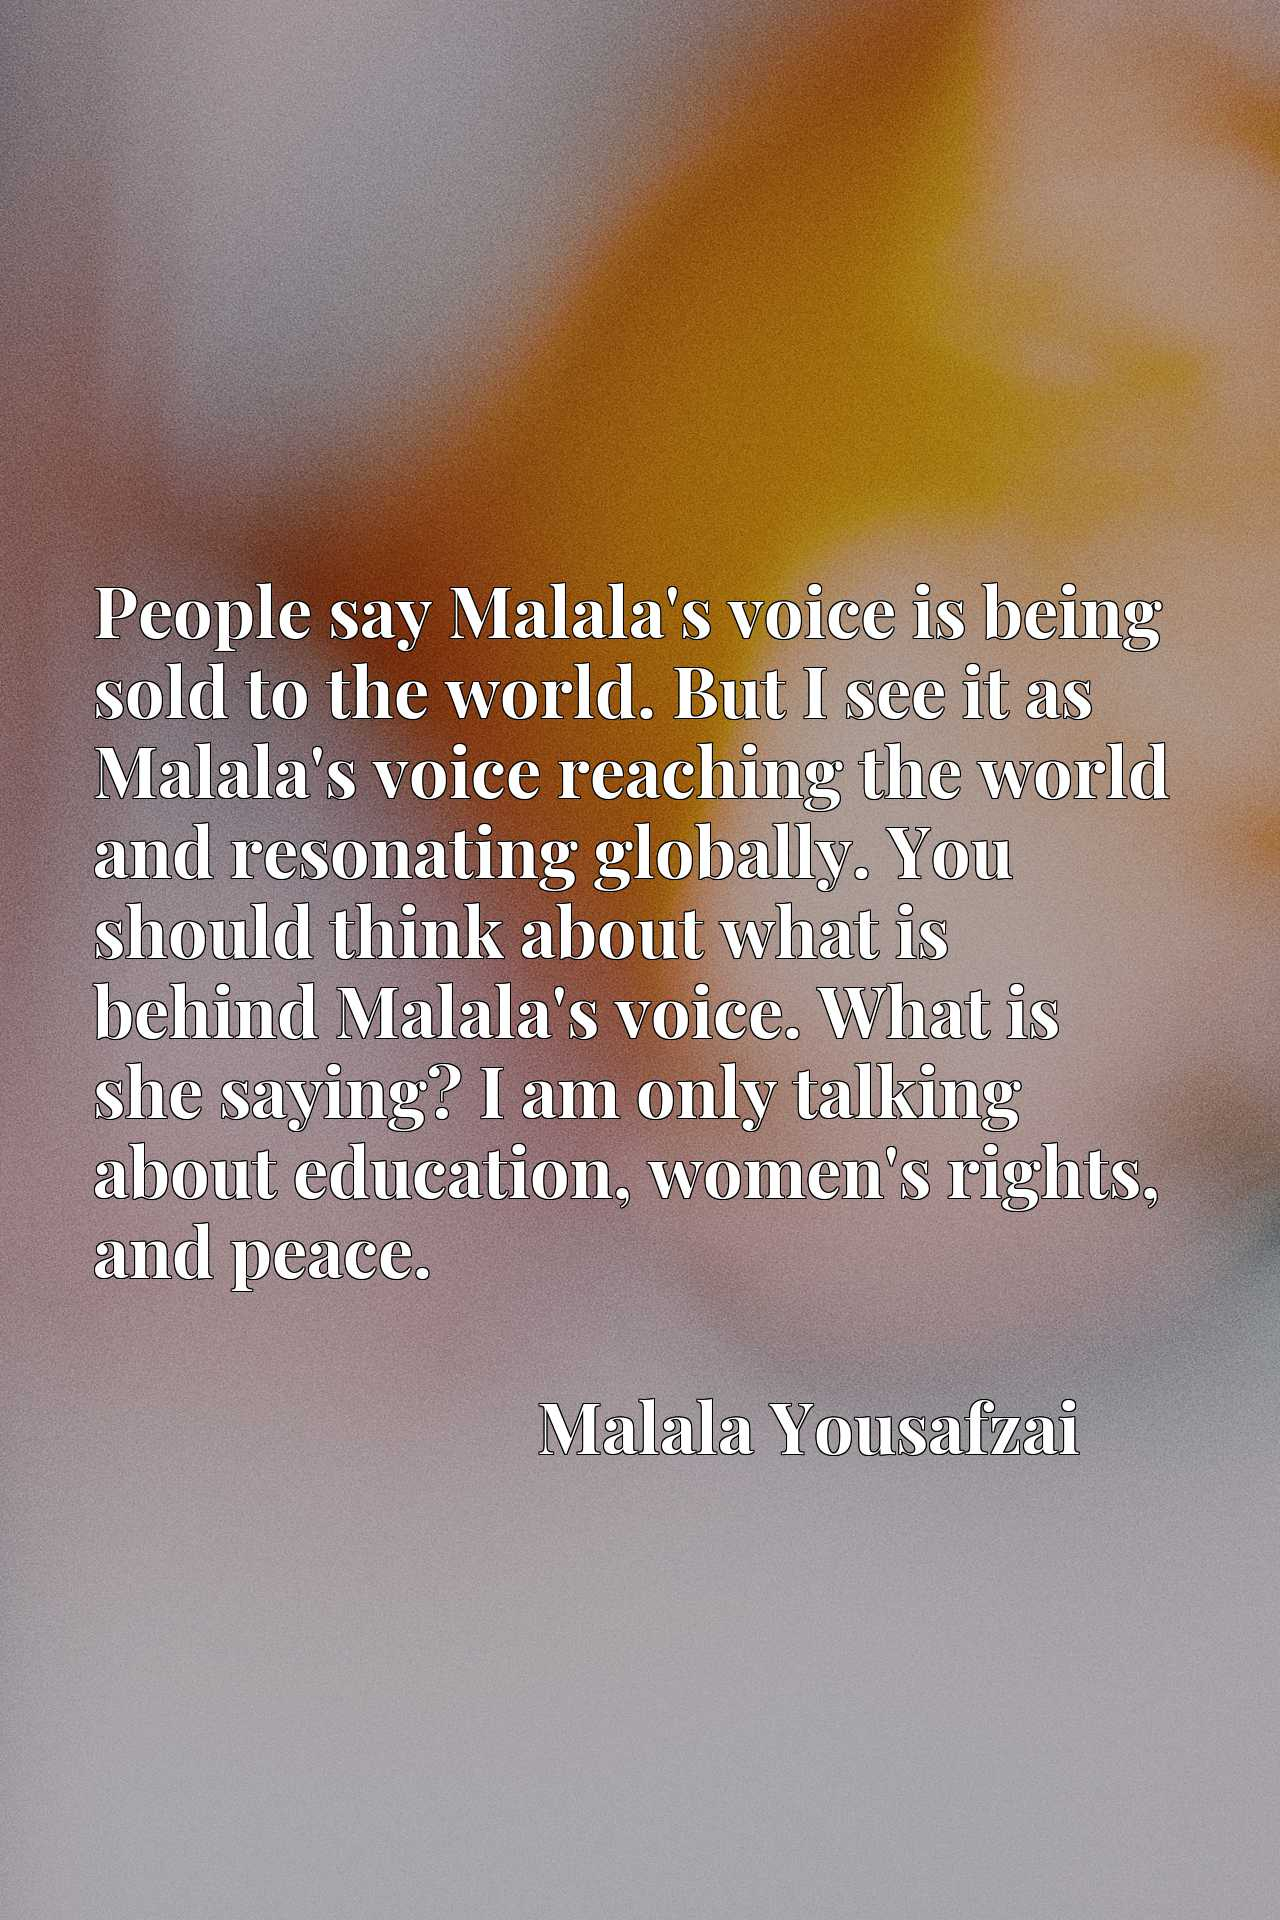 People say Malala's voice is being sold to the world. But I see it as Malala's voice reaching the world and resonating globally. You should think about what is behind Malala's voice. What is she saying? I am only talking about education, women's rights, and peace.